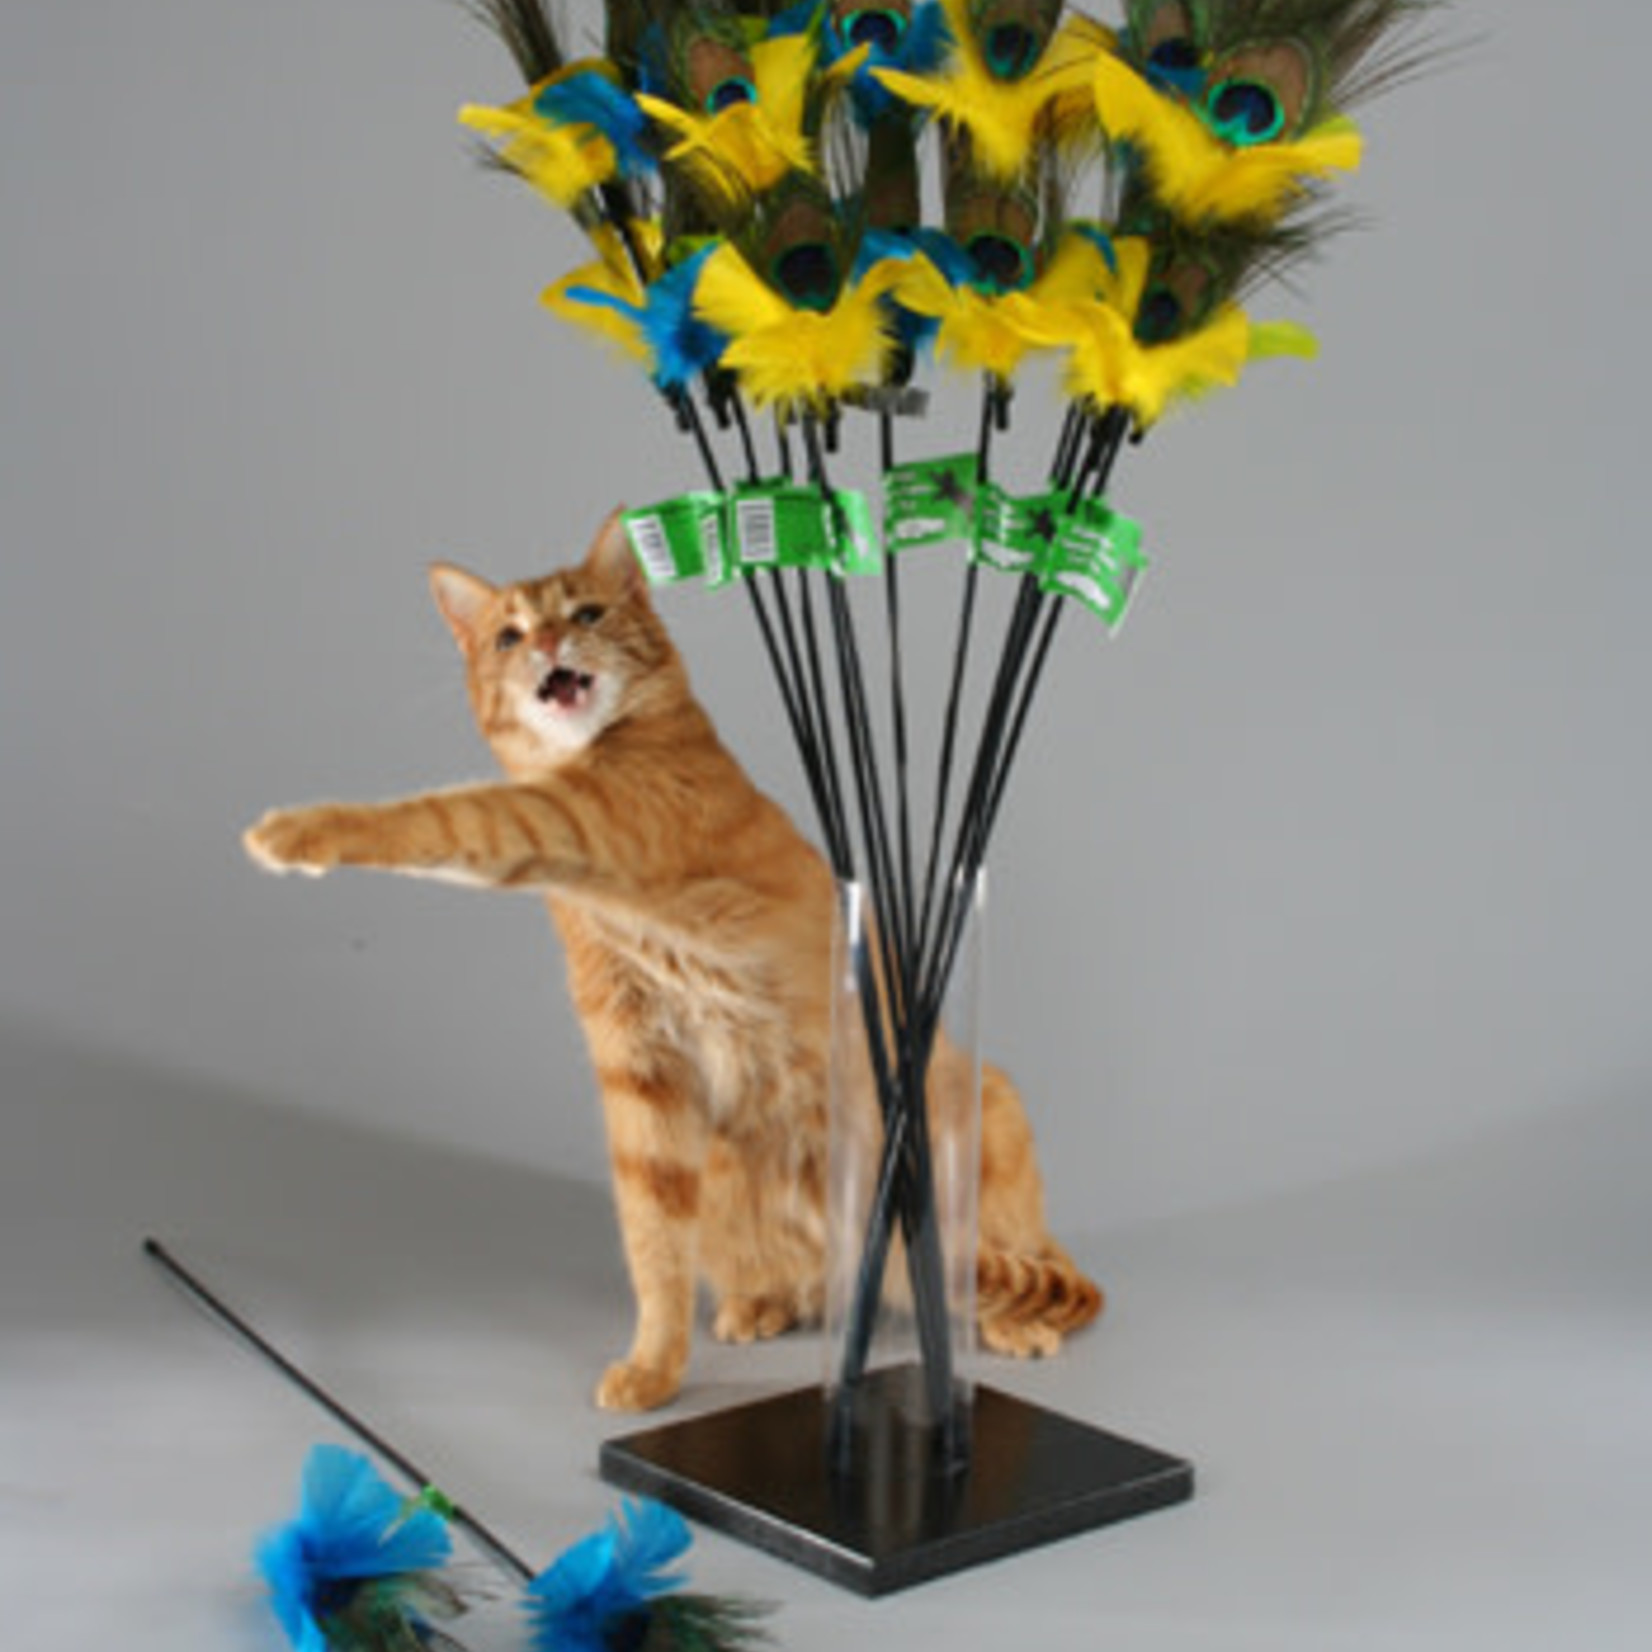 Vee Enterprises PURRfect Peacock Feather Cat Wand Toy